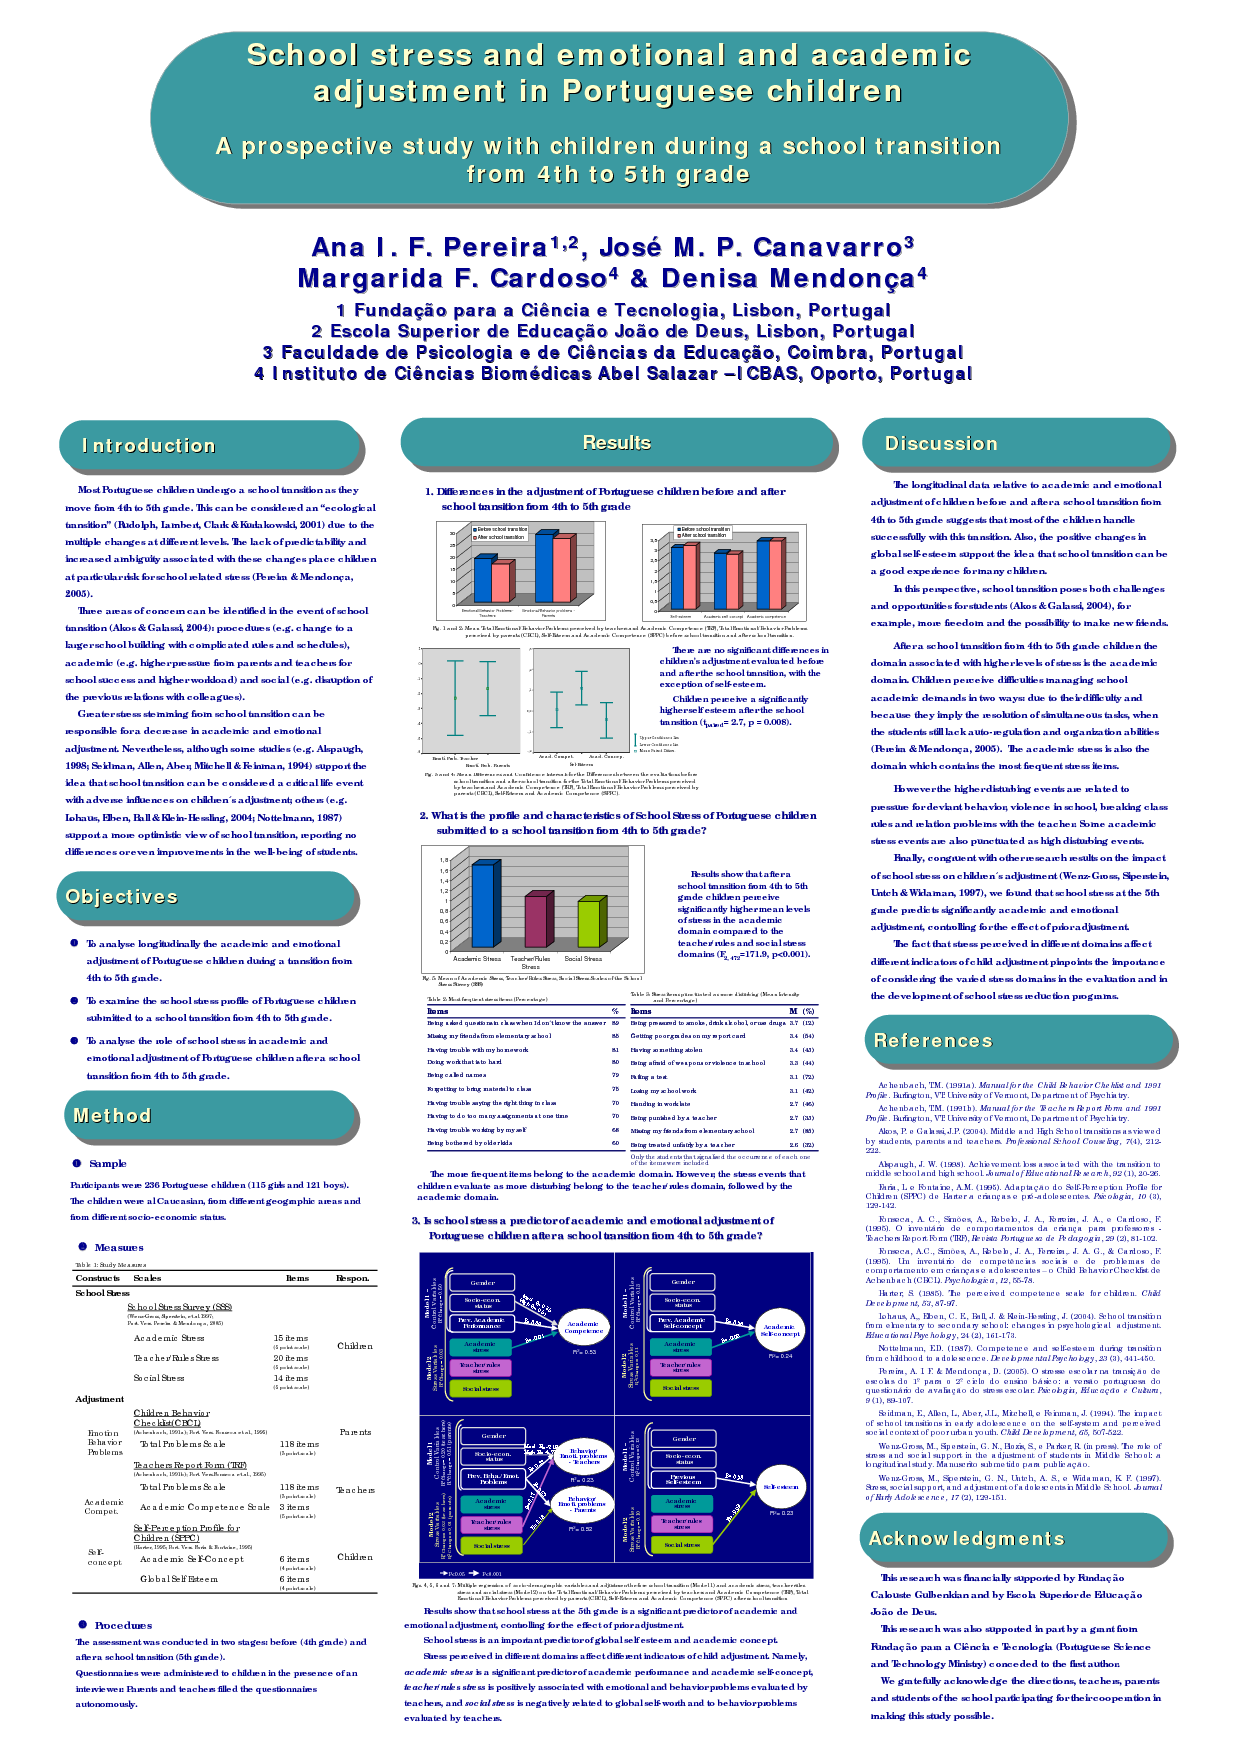 poster scientifique exemple cv